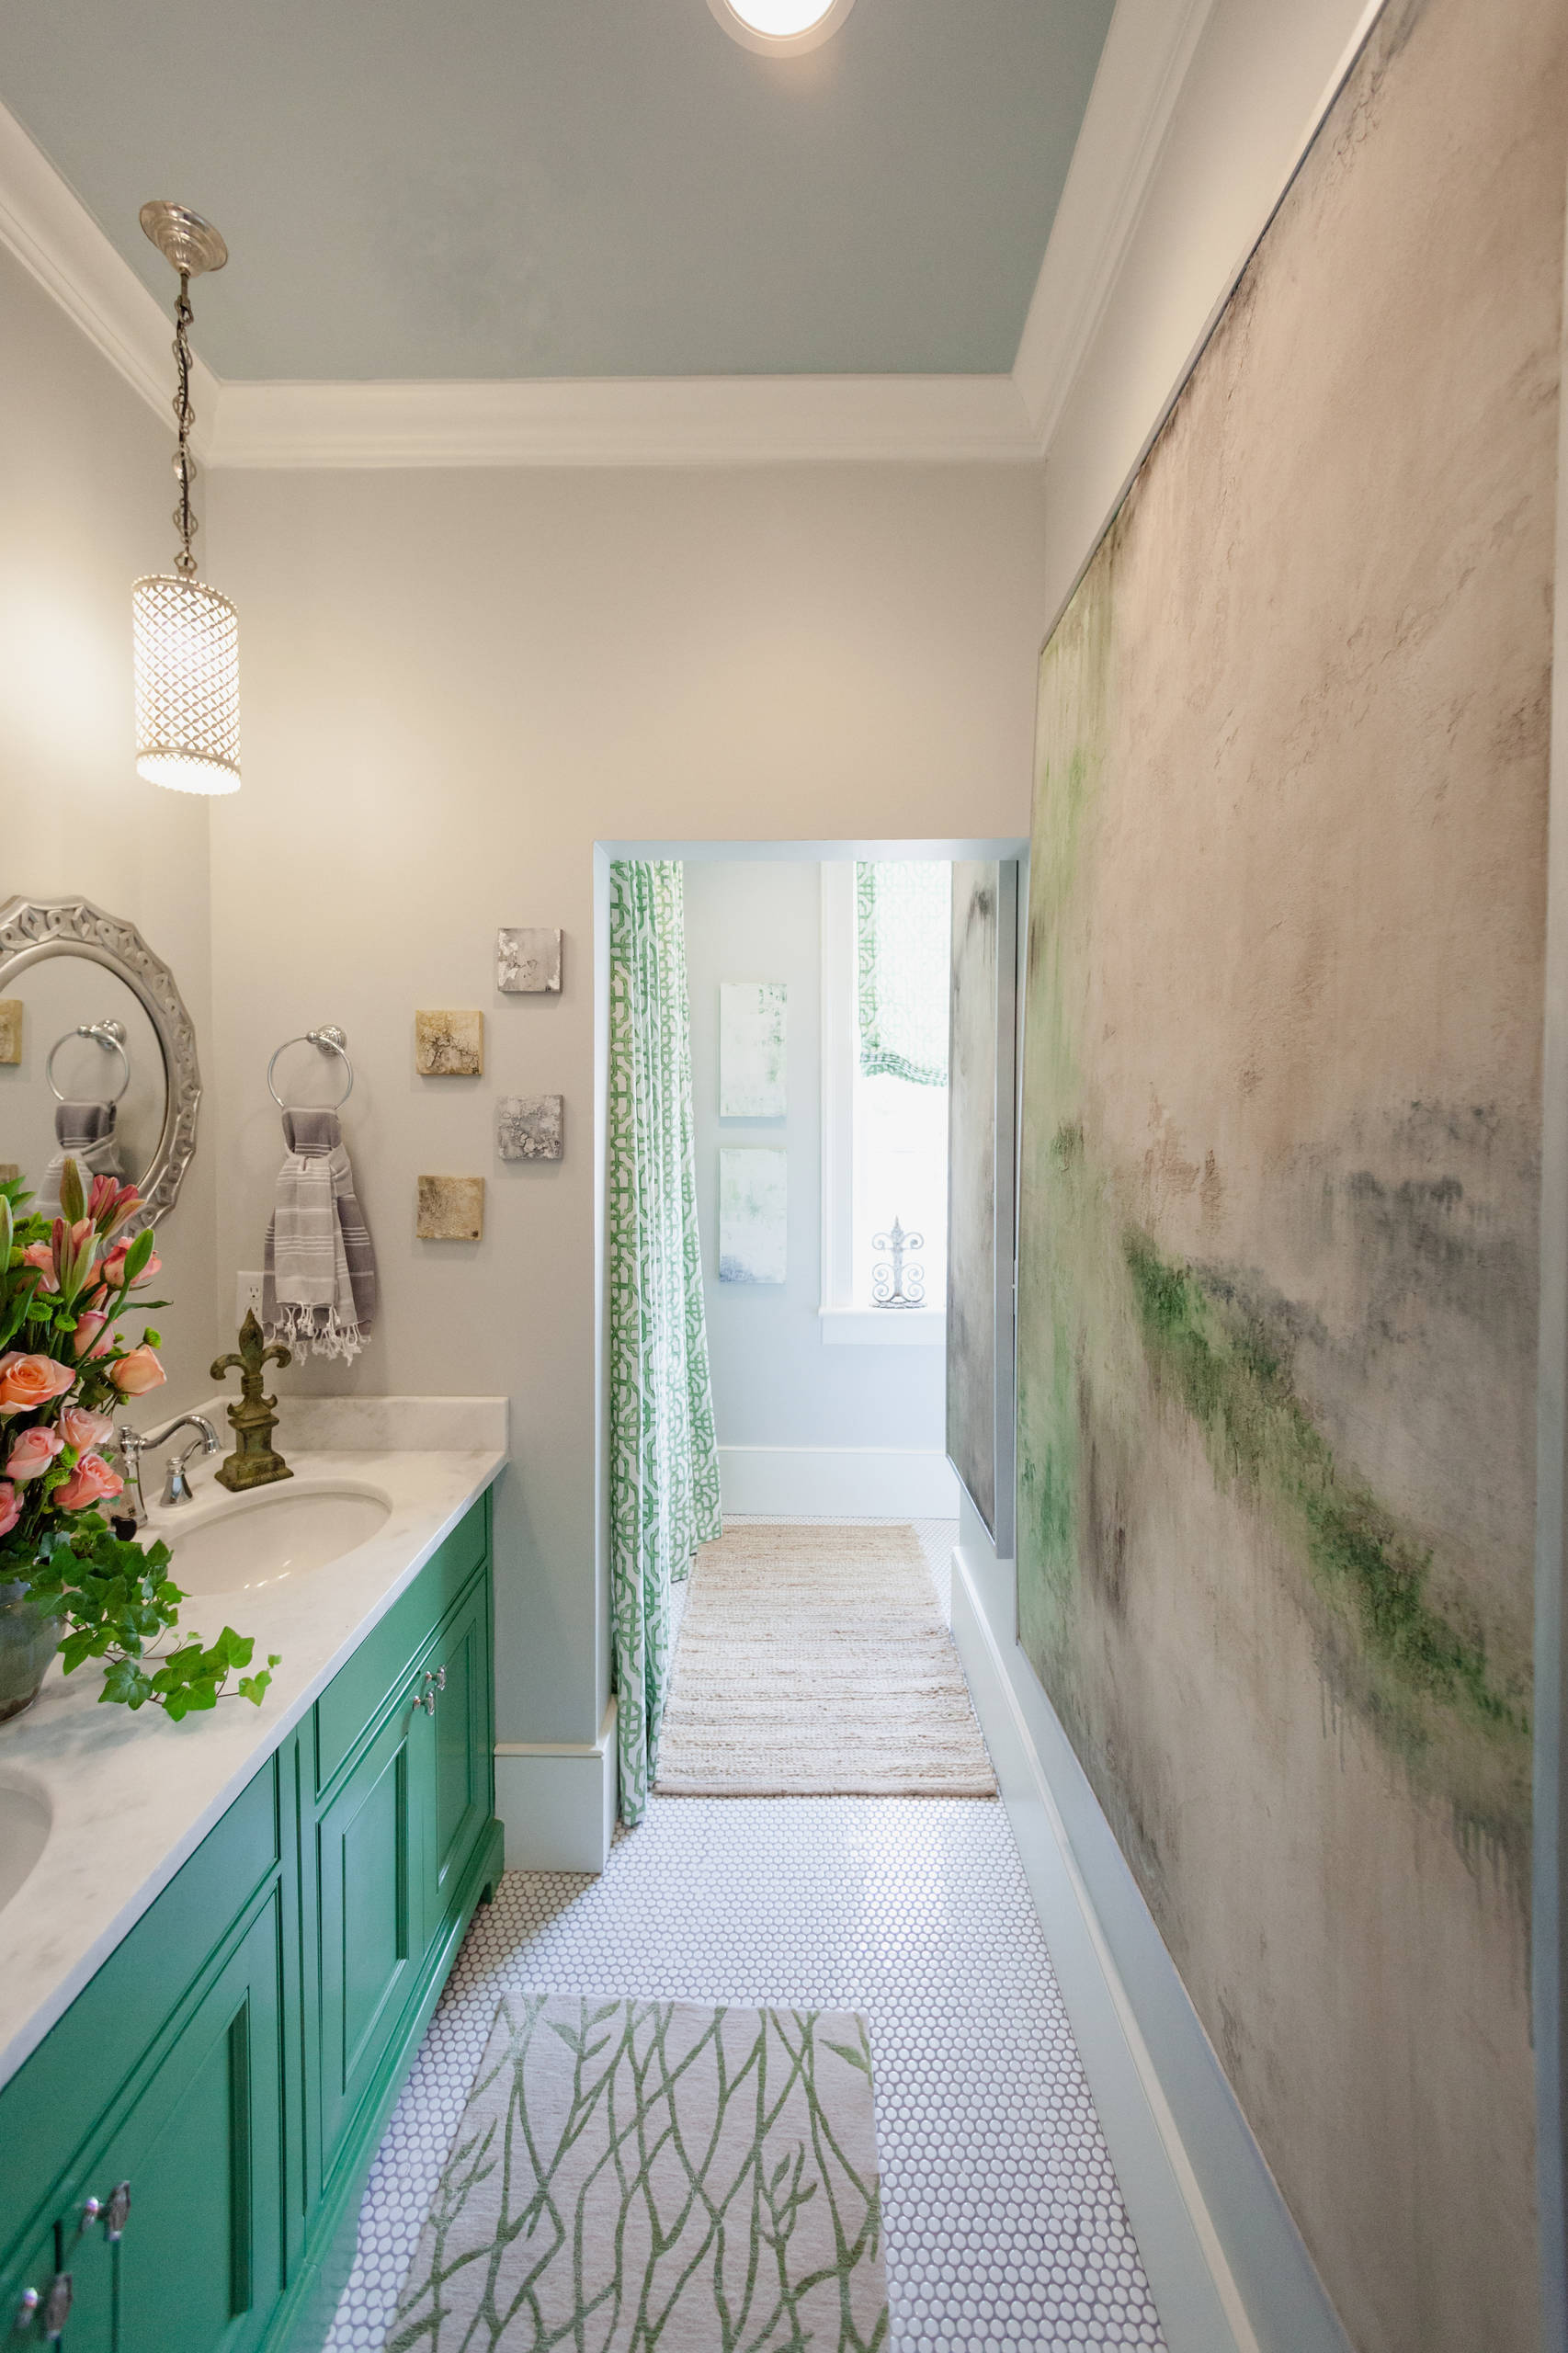 Separate spaces for bathroom functions improves family harmony.  We promise!